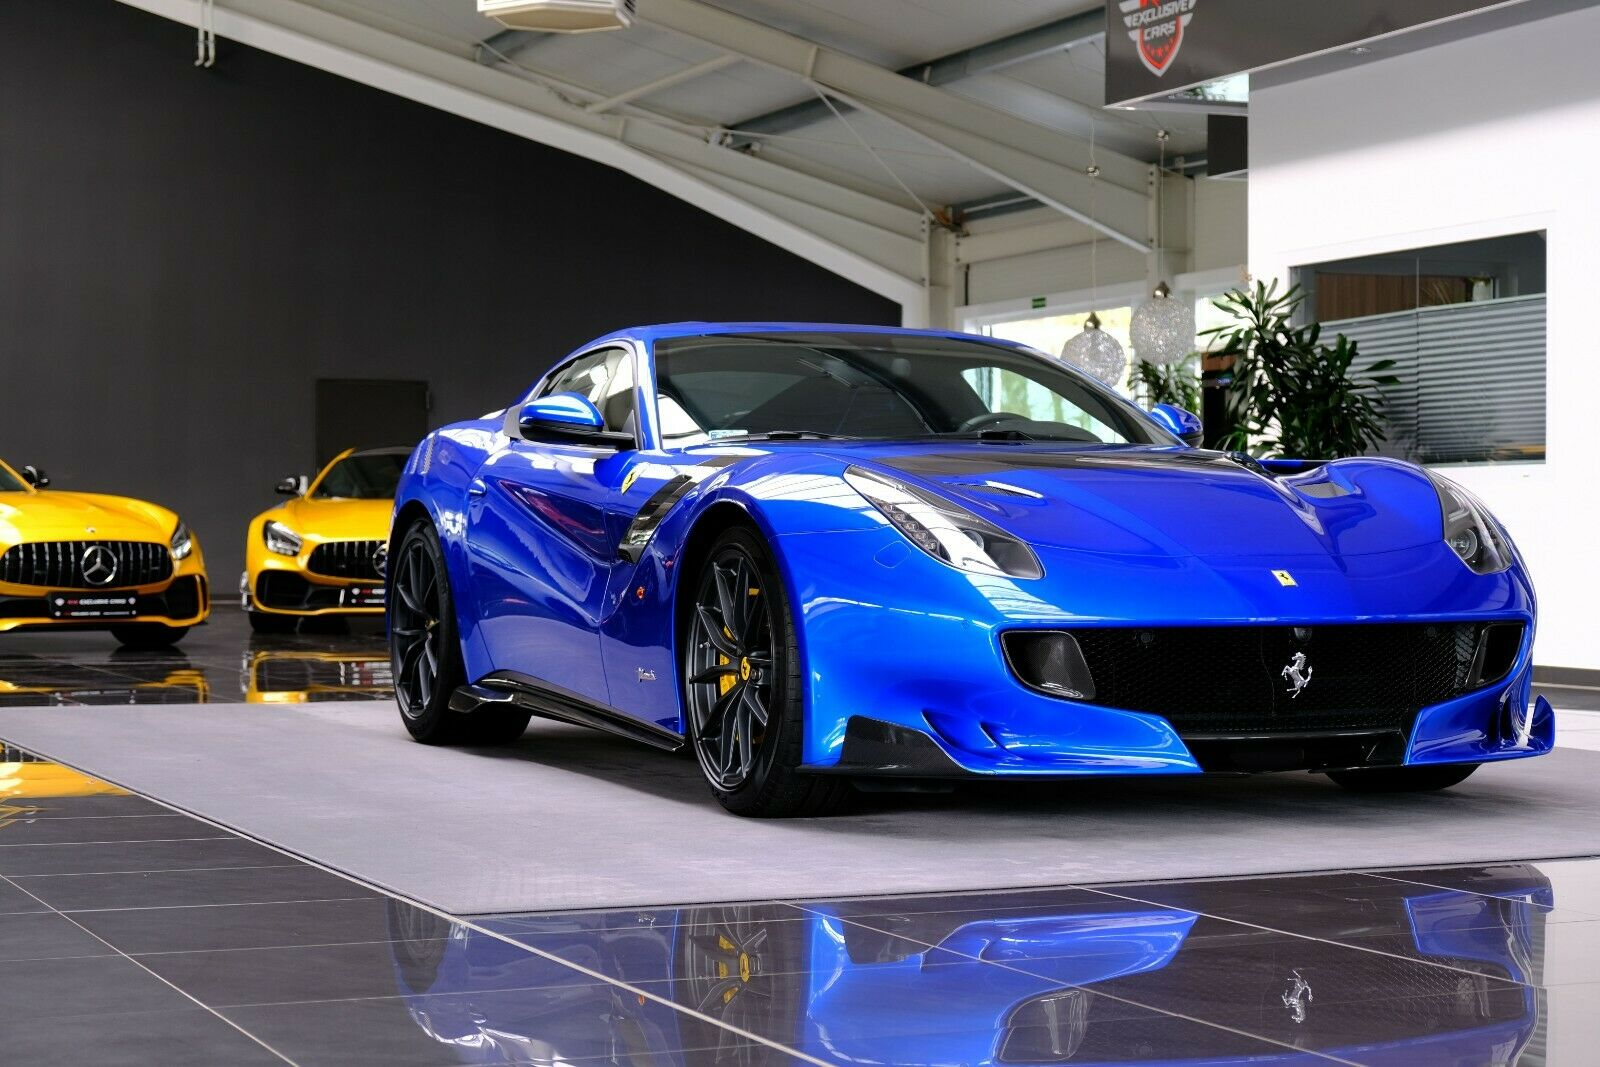 Ferrari F12 Tdf Tailor Made Limited Edition 1 Of 1 Rw Exclusive Germany For Sale On Luxurypulse